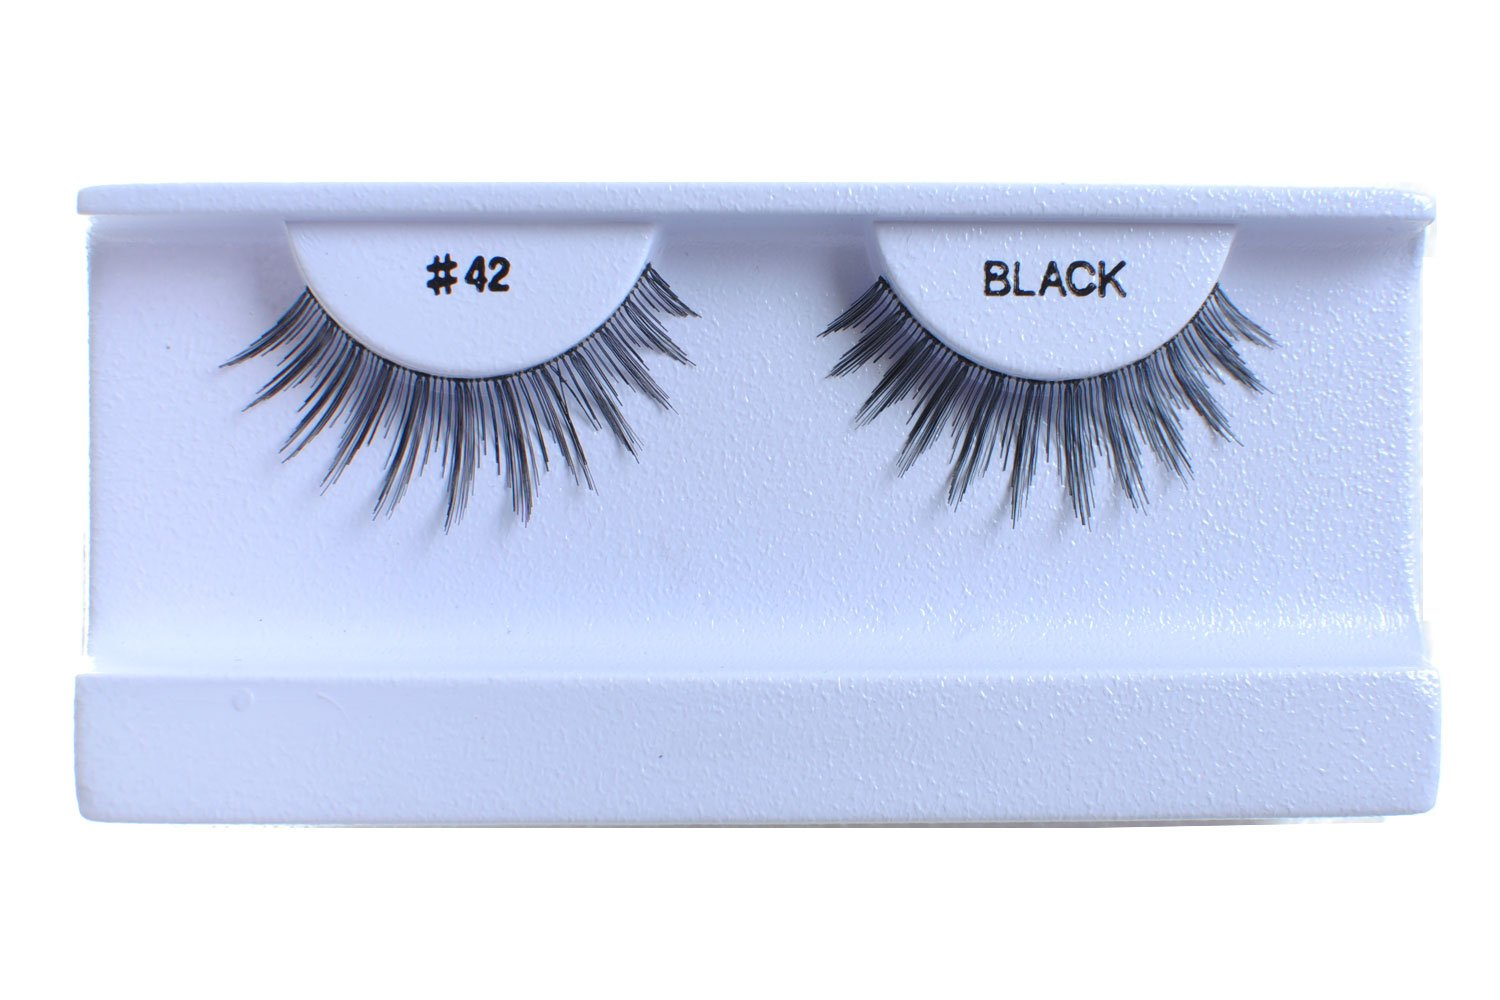 100 Pairs 100% Human Hair False Eyelashes Natural Black #42 by BULKLASHES